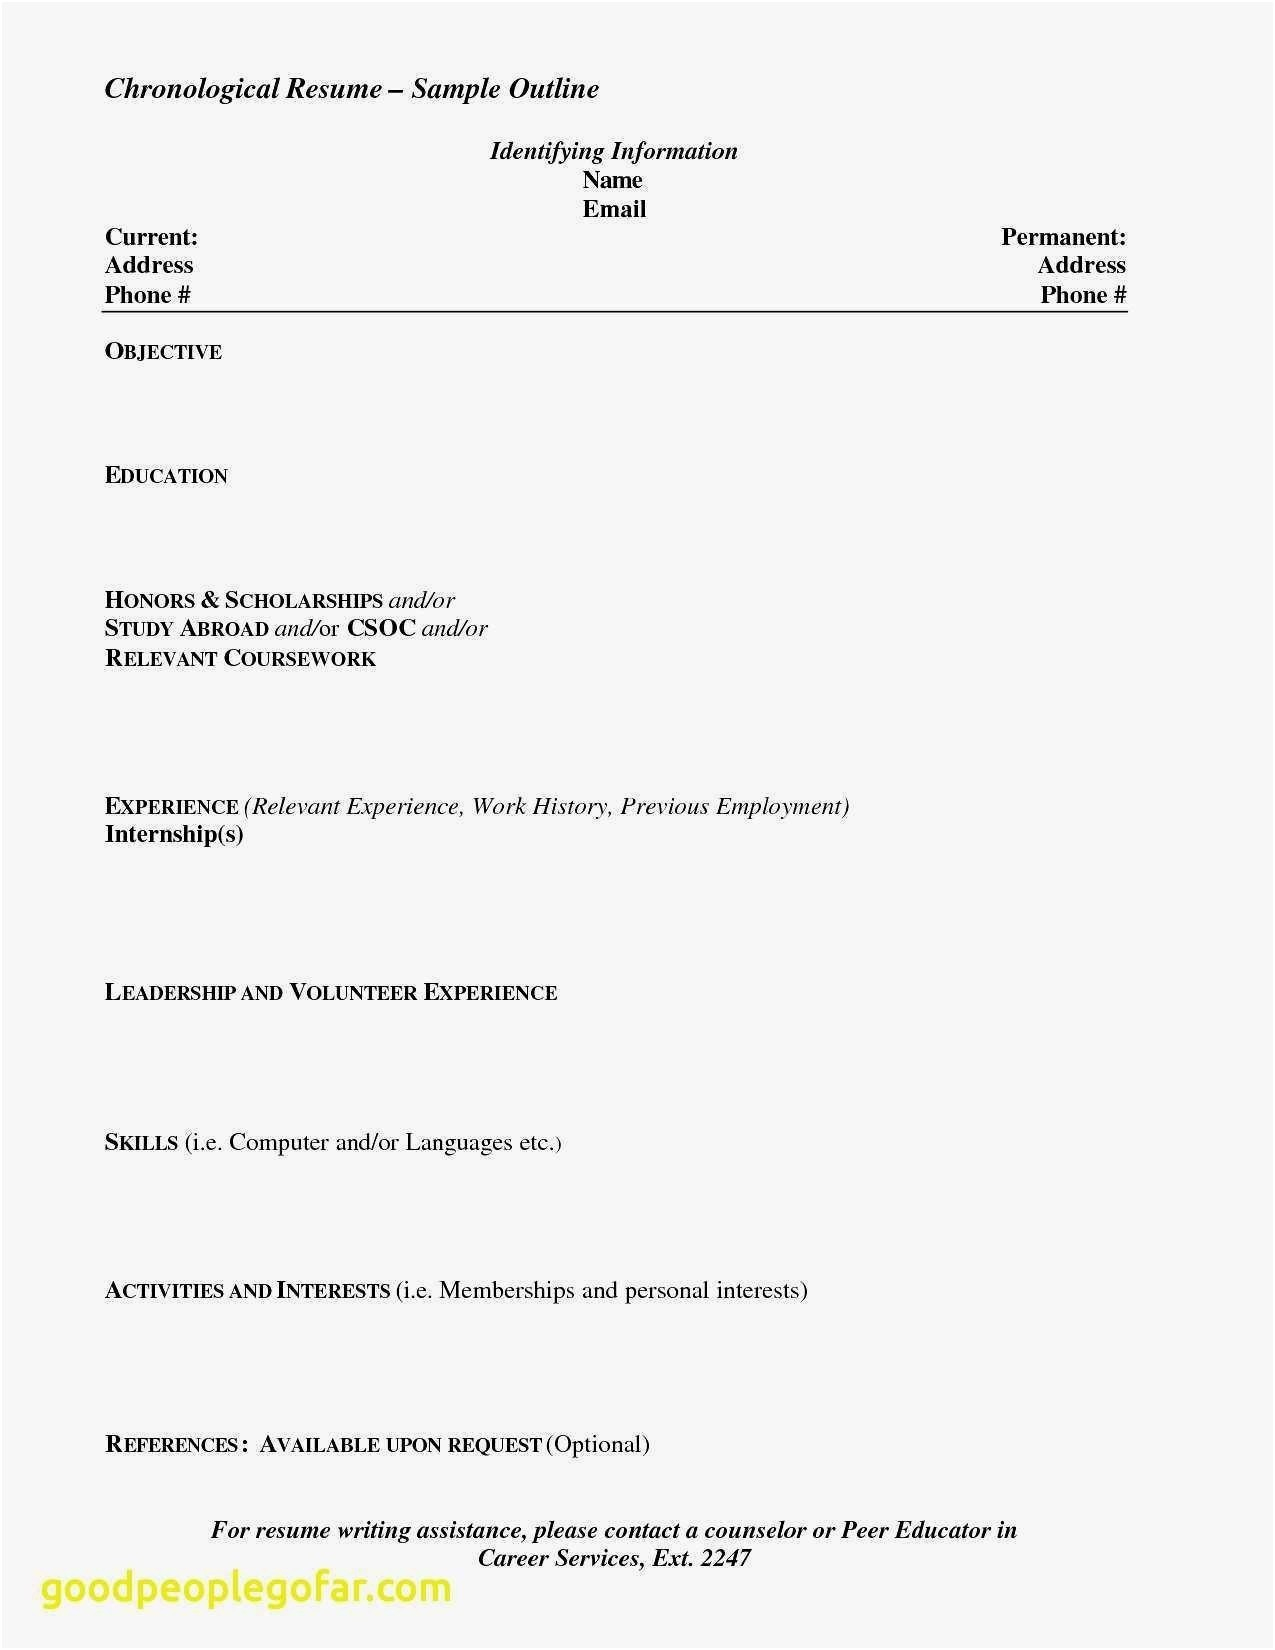 Strong Verbs for Resume - Powerful Resume Examples Refrence Action Verbs for Resume New Unique